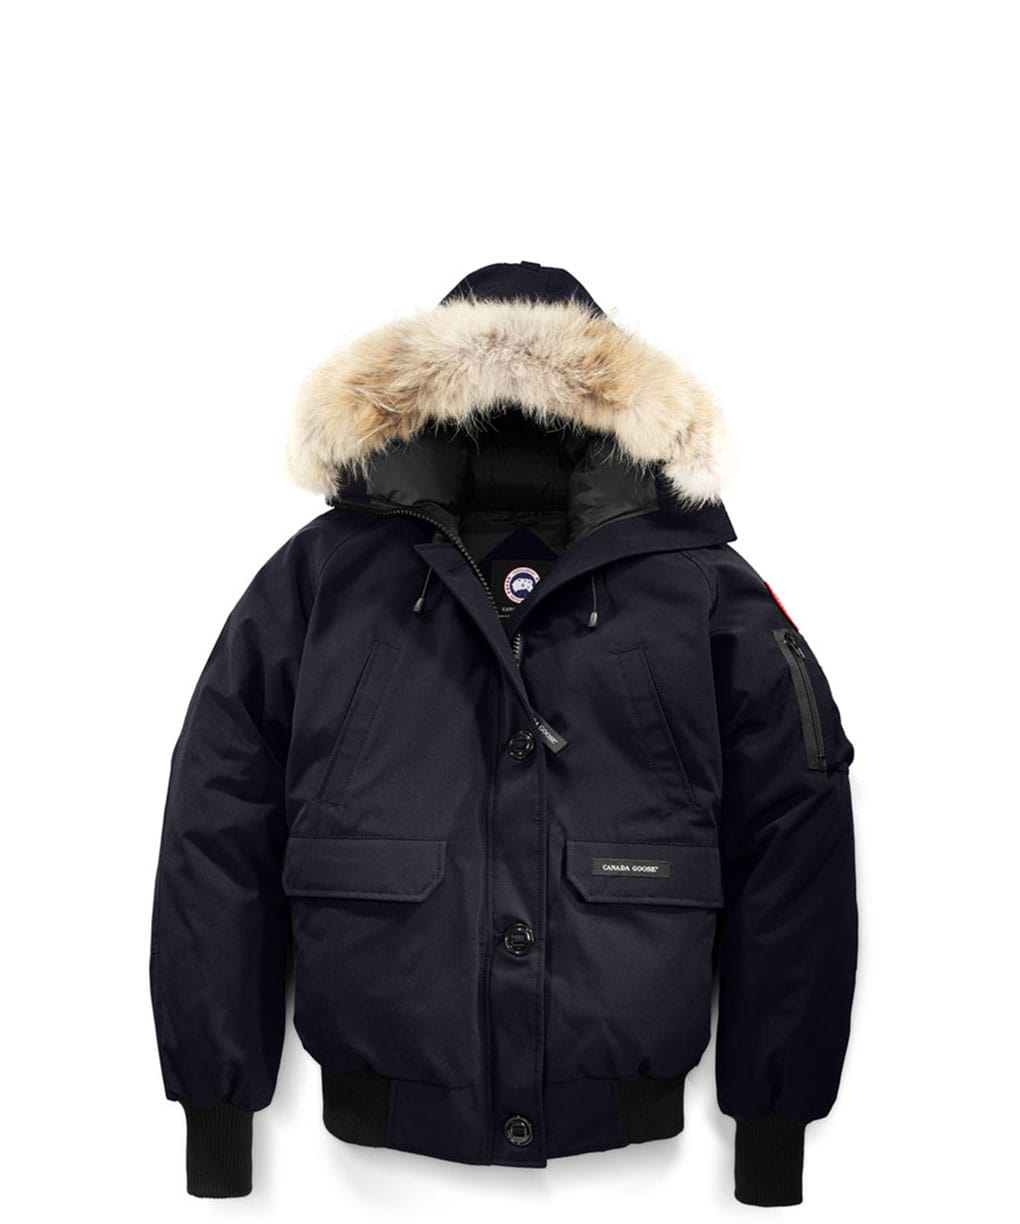 https://www.canadagoose.jp/shop/canadagoose/CHILLIWACK+BOMBER+FUSION+FIT/item/view/shop_product_id/793